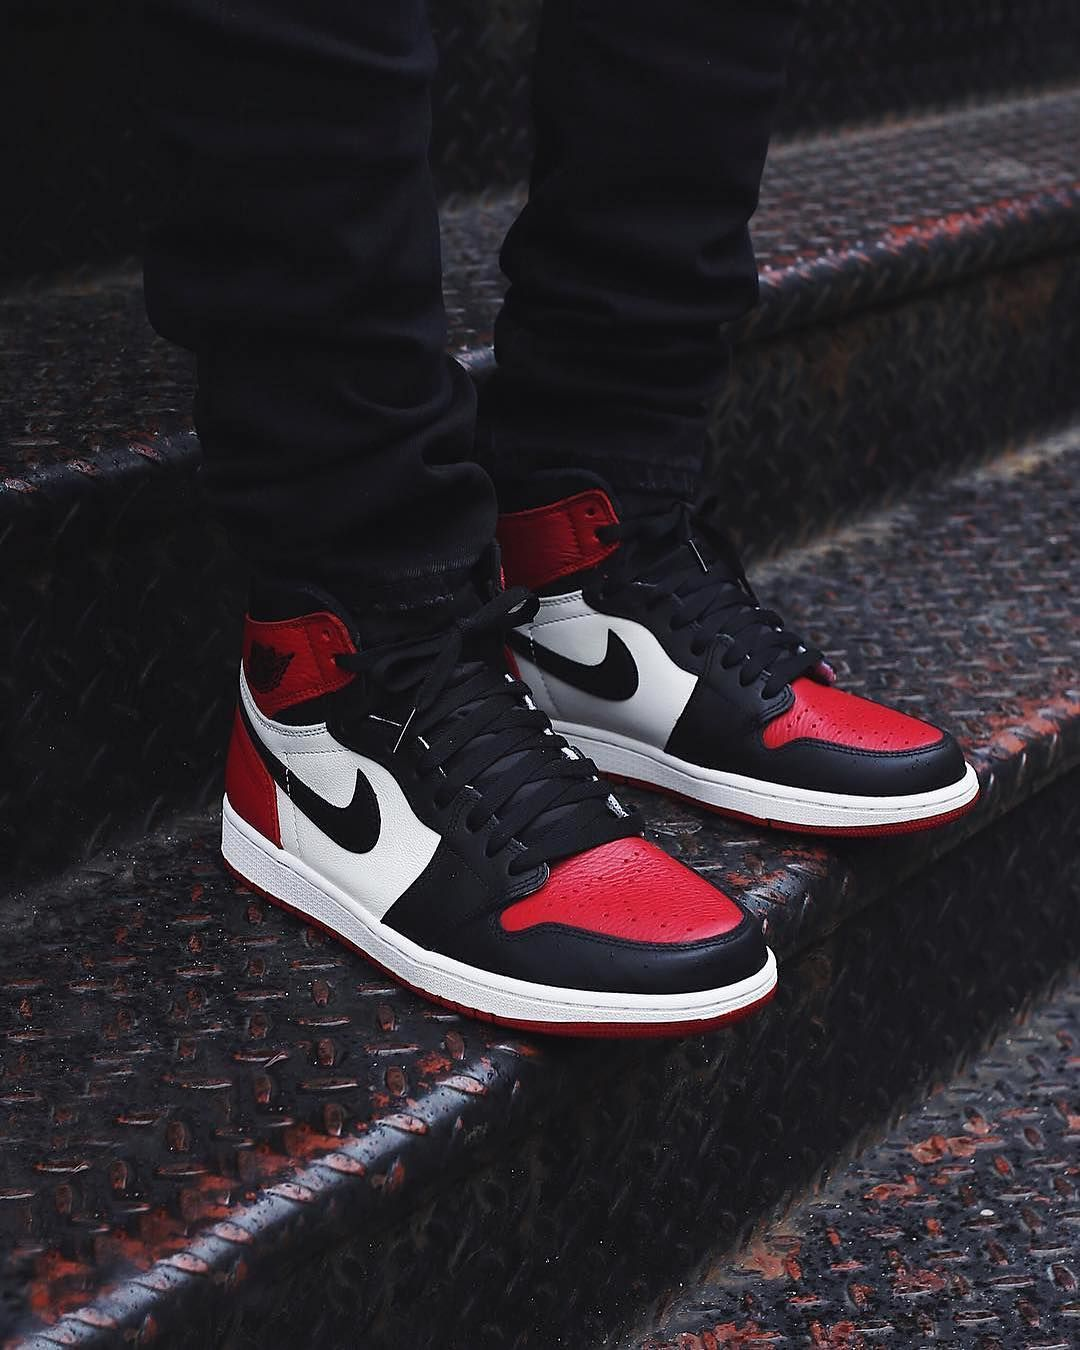 a0d17175262fdf The Air Jordan 1 Bred Toe releases tomorrow February 24th. Are you going  for a